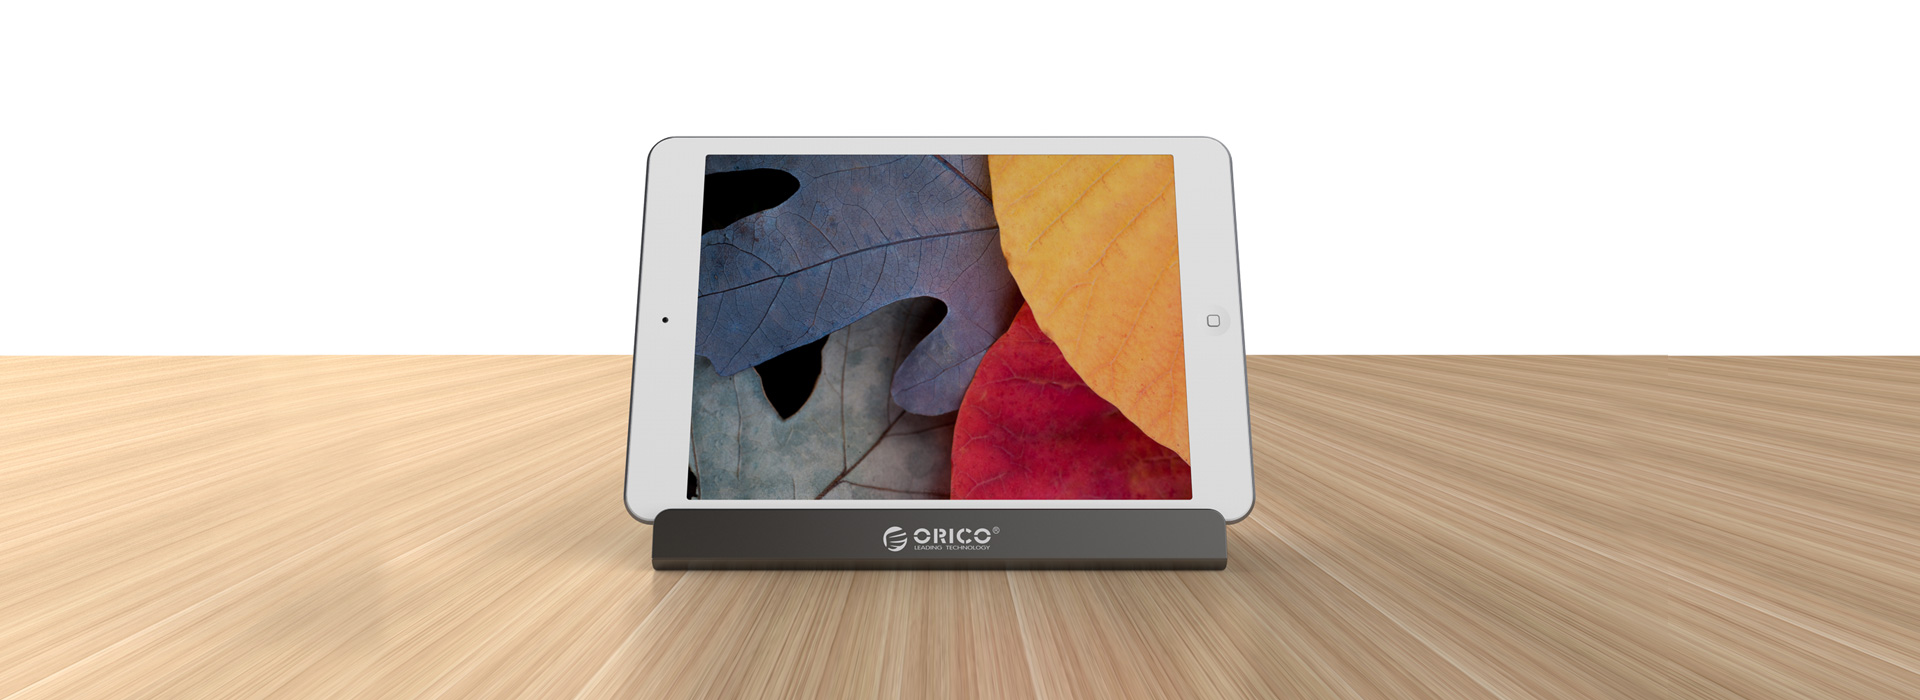 ORICO Universal Docking Station for Cellphone and Tablet